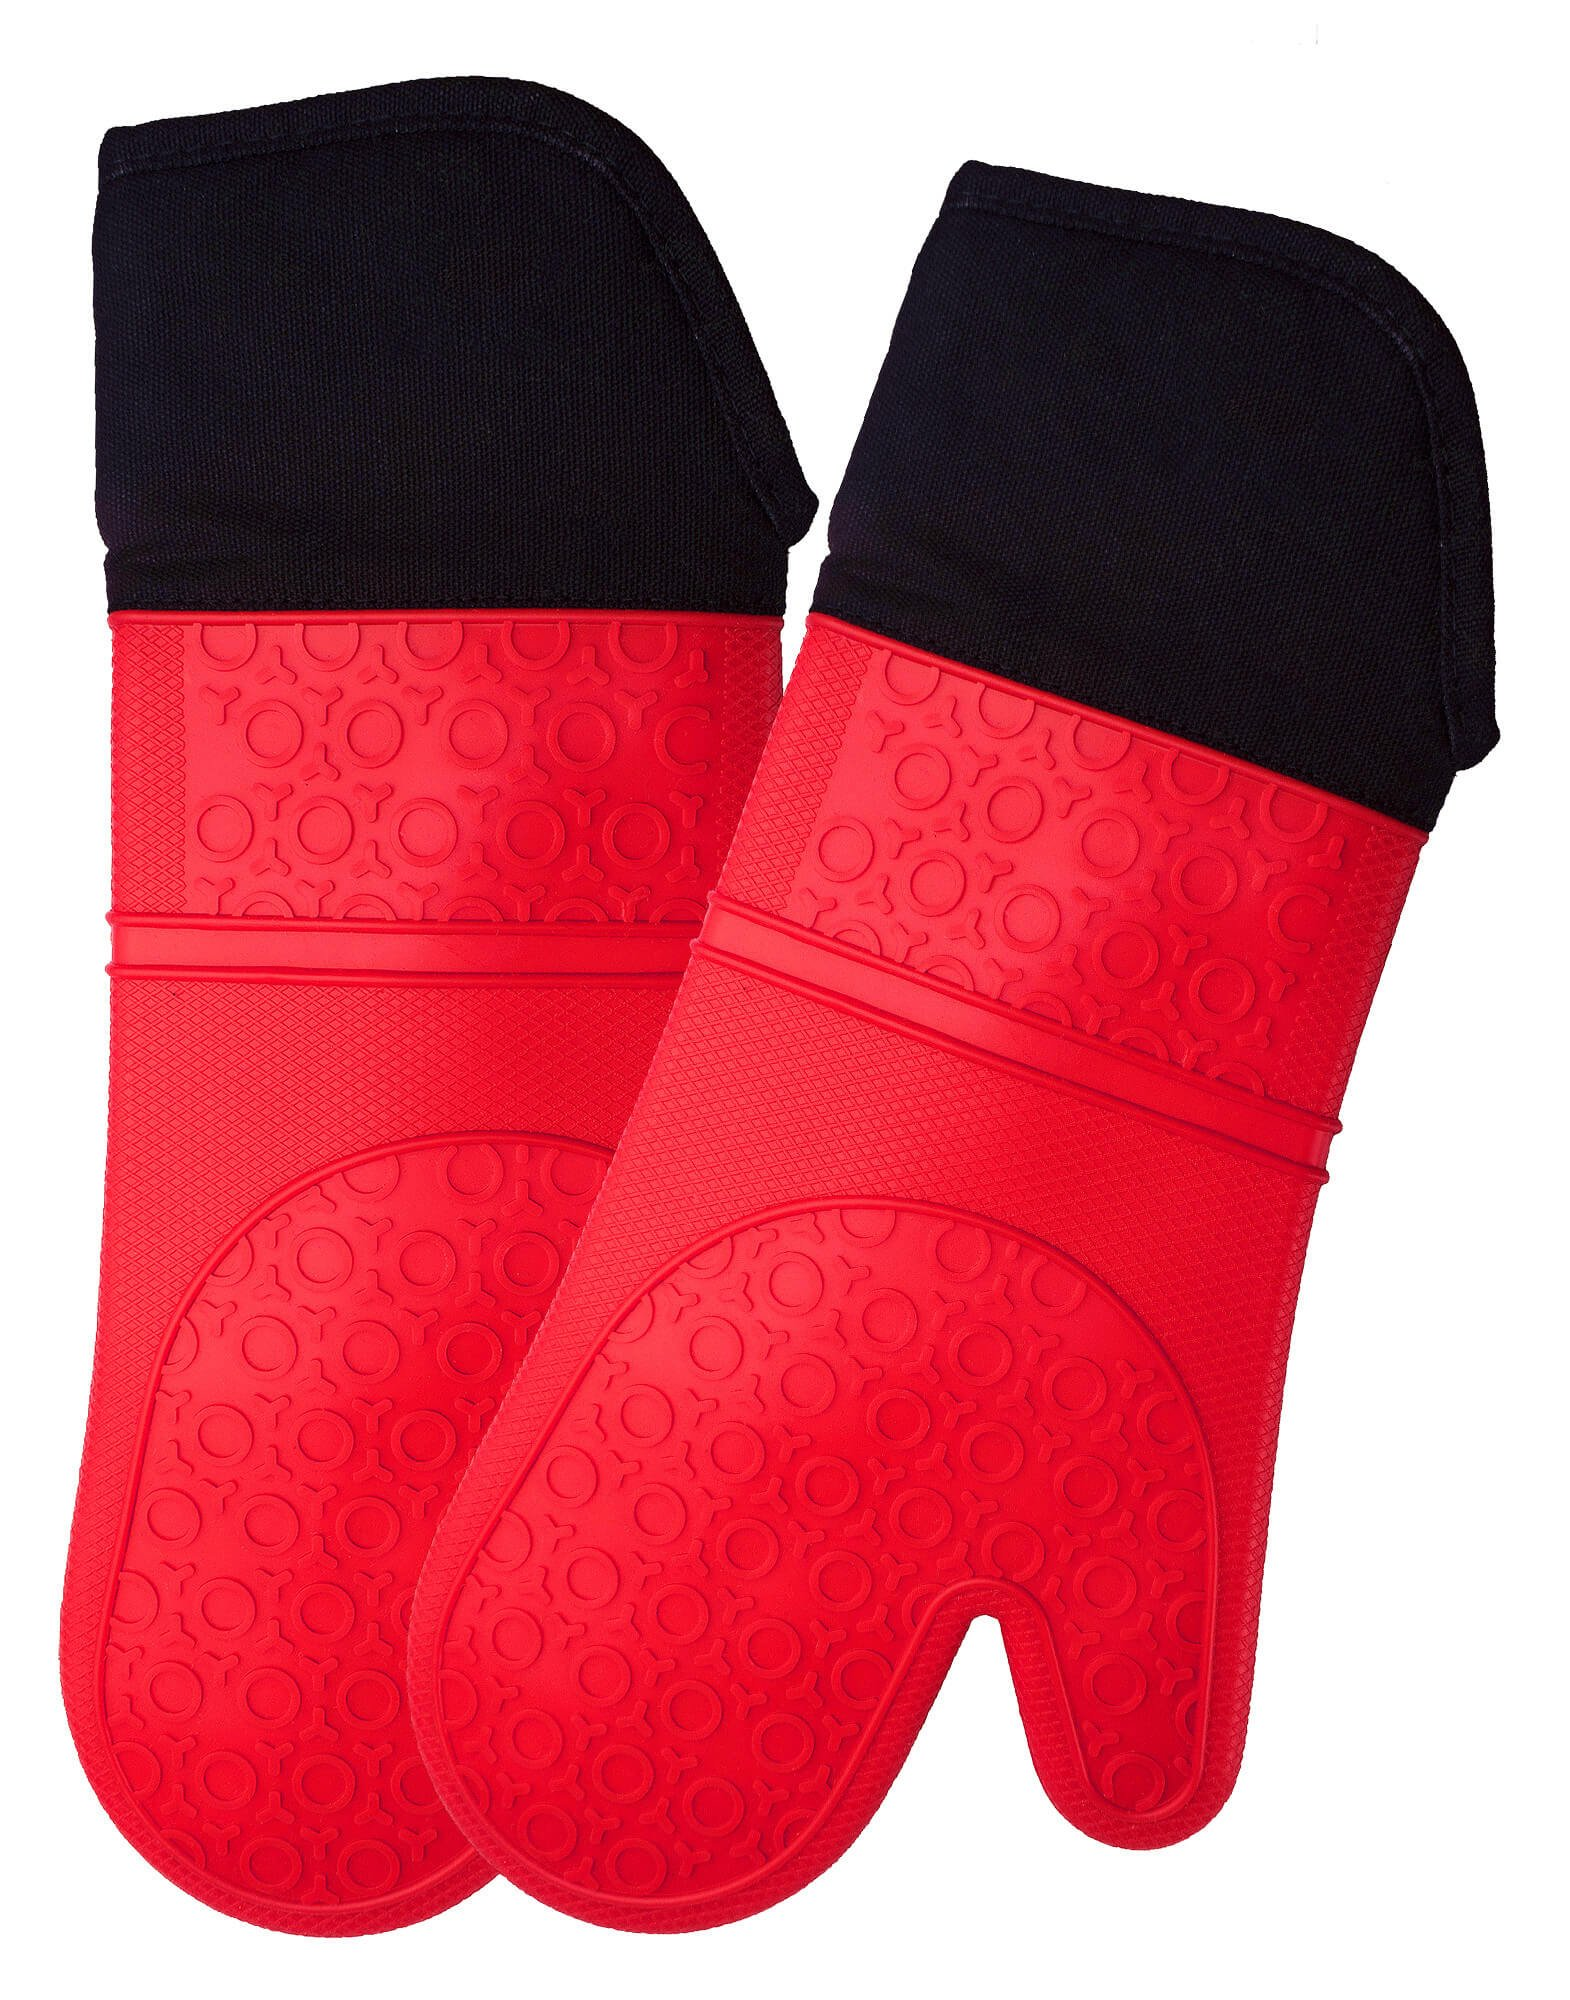 Extra Long Professional Silicone Oven Mitt - 1 Pair - Oven Mitts with Quilted Liner - Red - Homwe by HOMWE